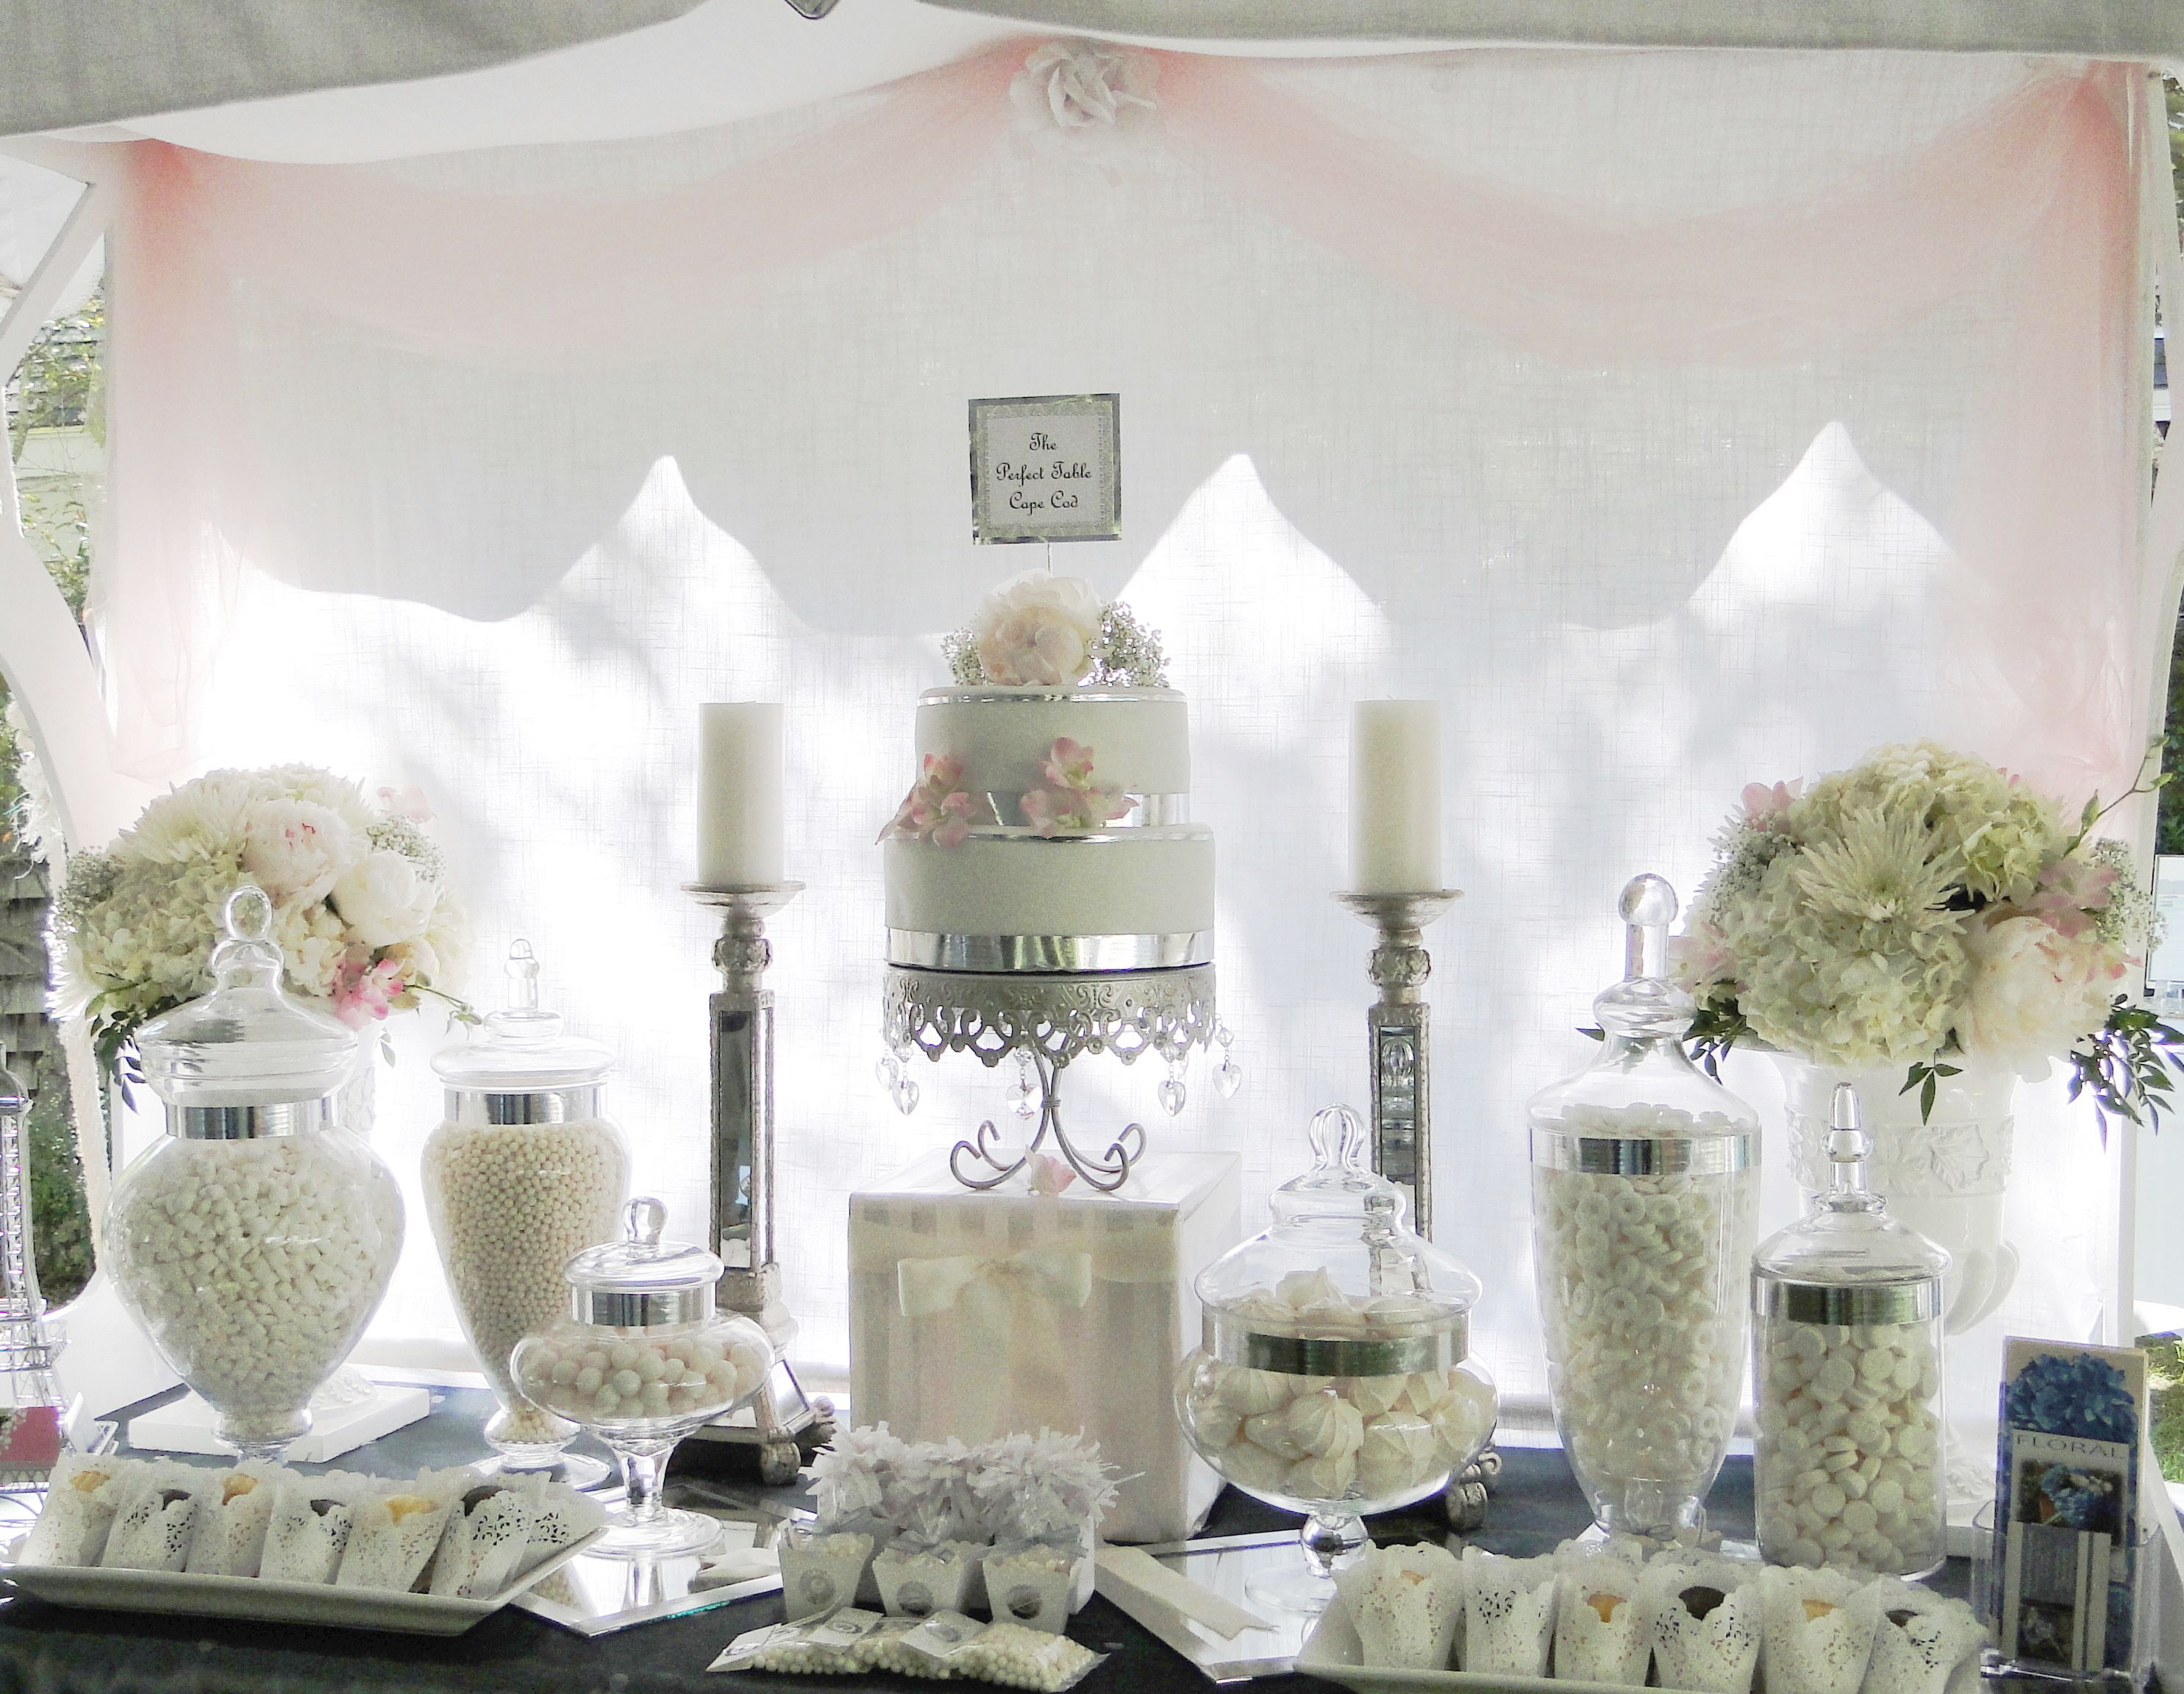 Www Theperfecttablecapecod Com Summer Wedding White Blush Candy Buffet Table Candy Buffet Wedding Sweet Table Wedding Candy Bar Wedding